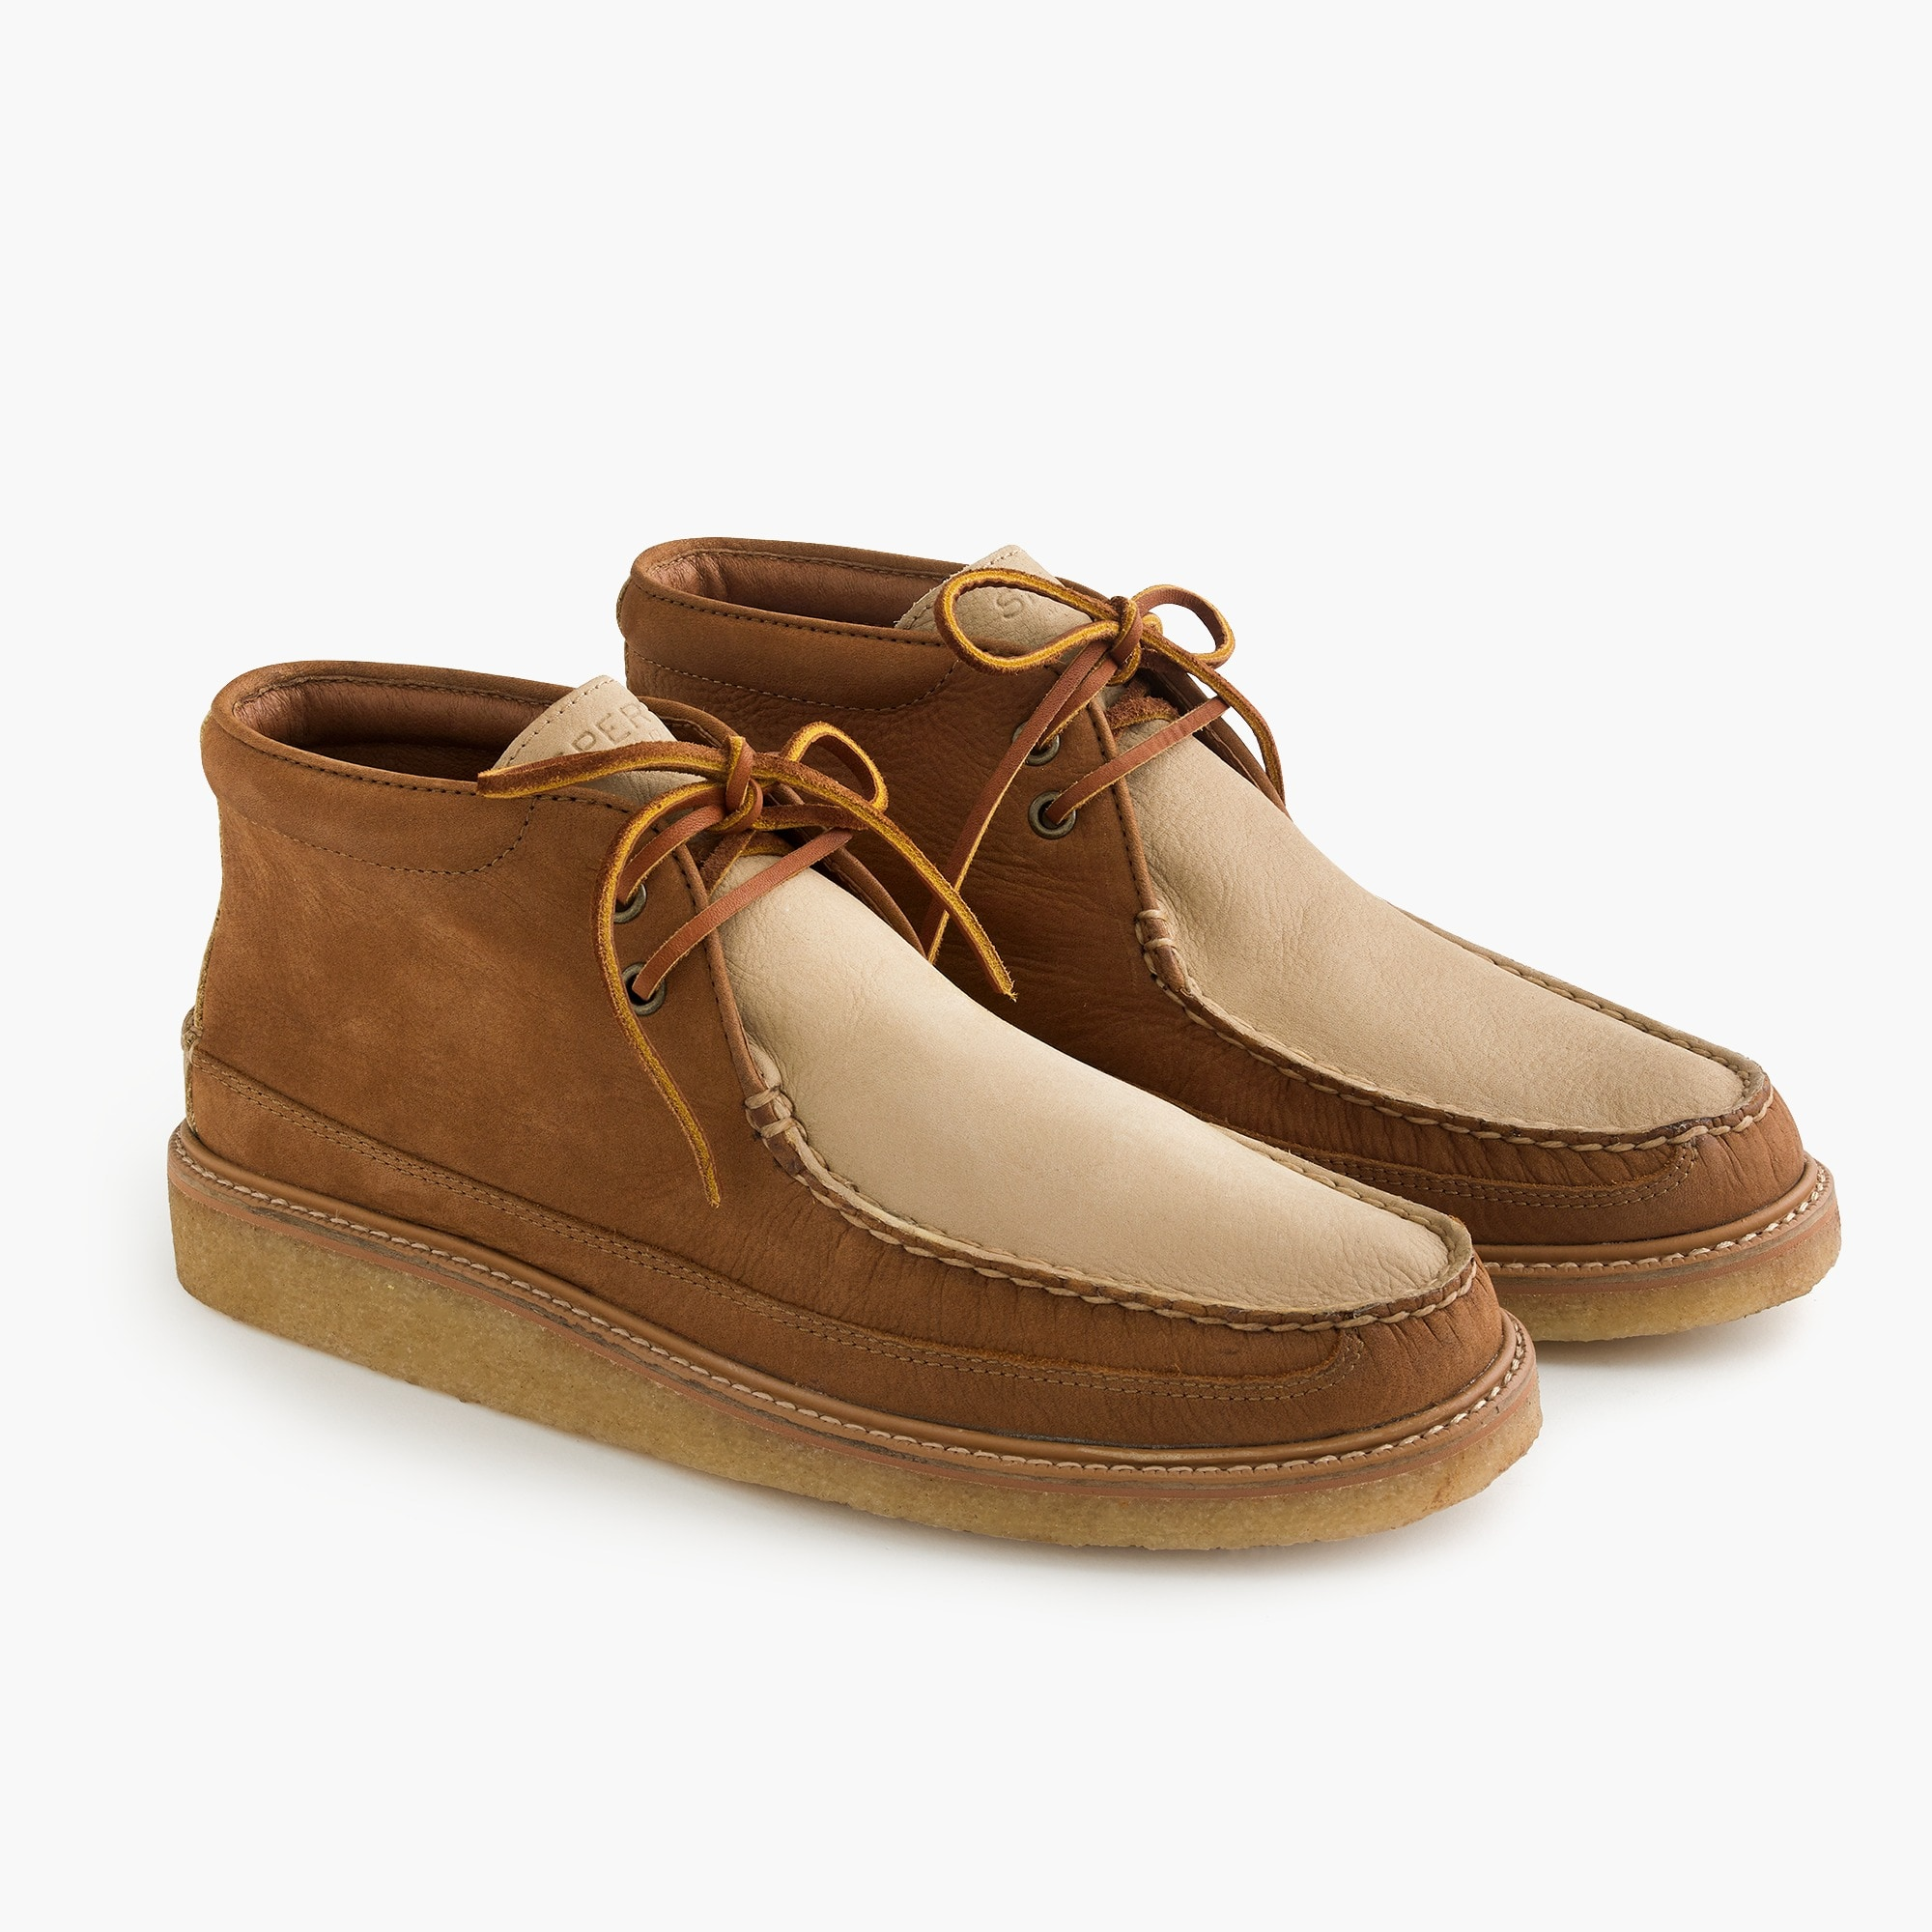 mens Sperry® for J.Crew crepe soled leather chukka boots